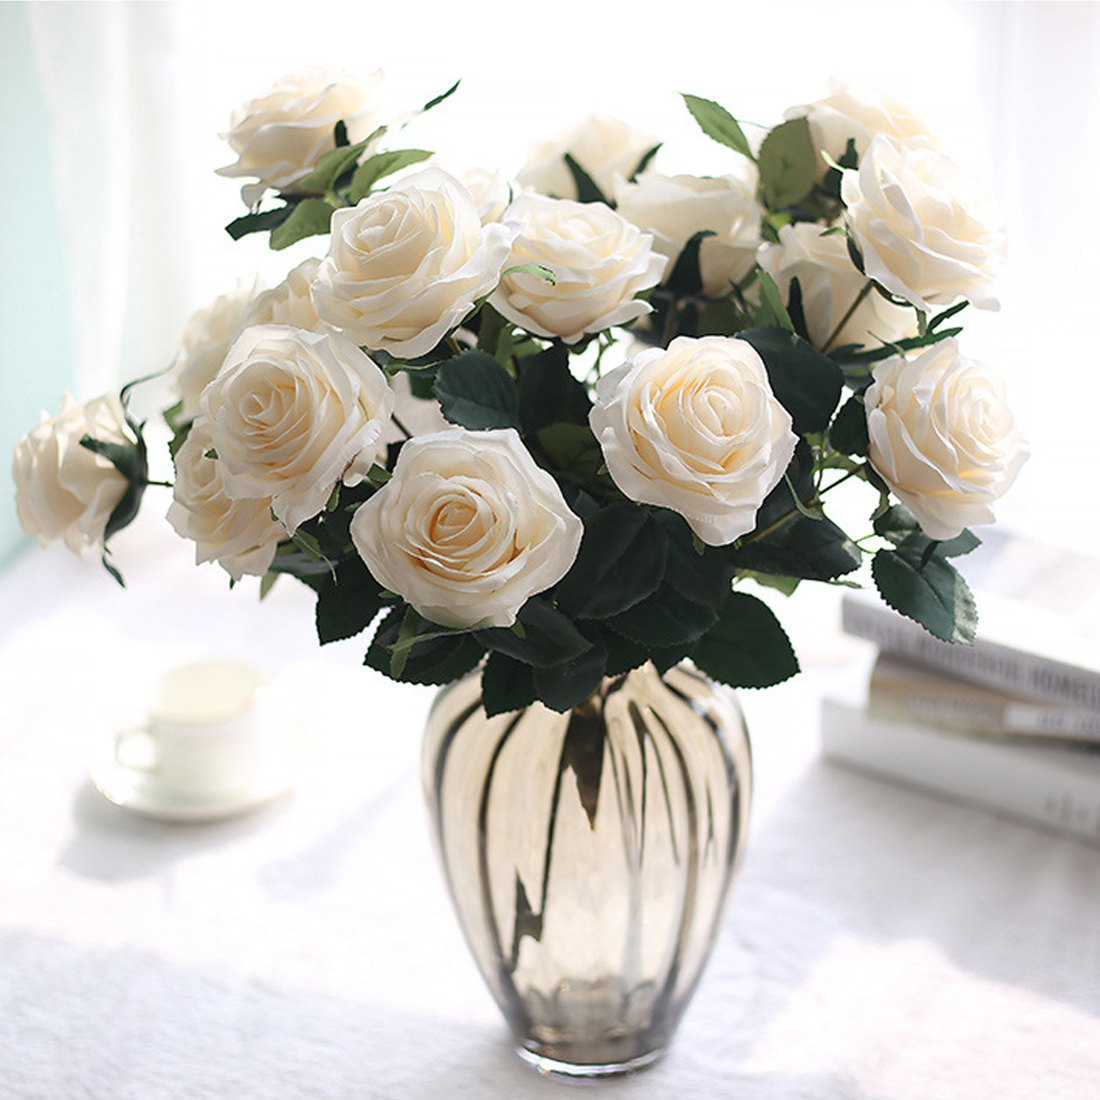 1 Bunch Artificial Silk French Rose Floral Bouquet Fake Flower